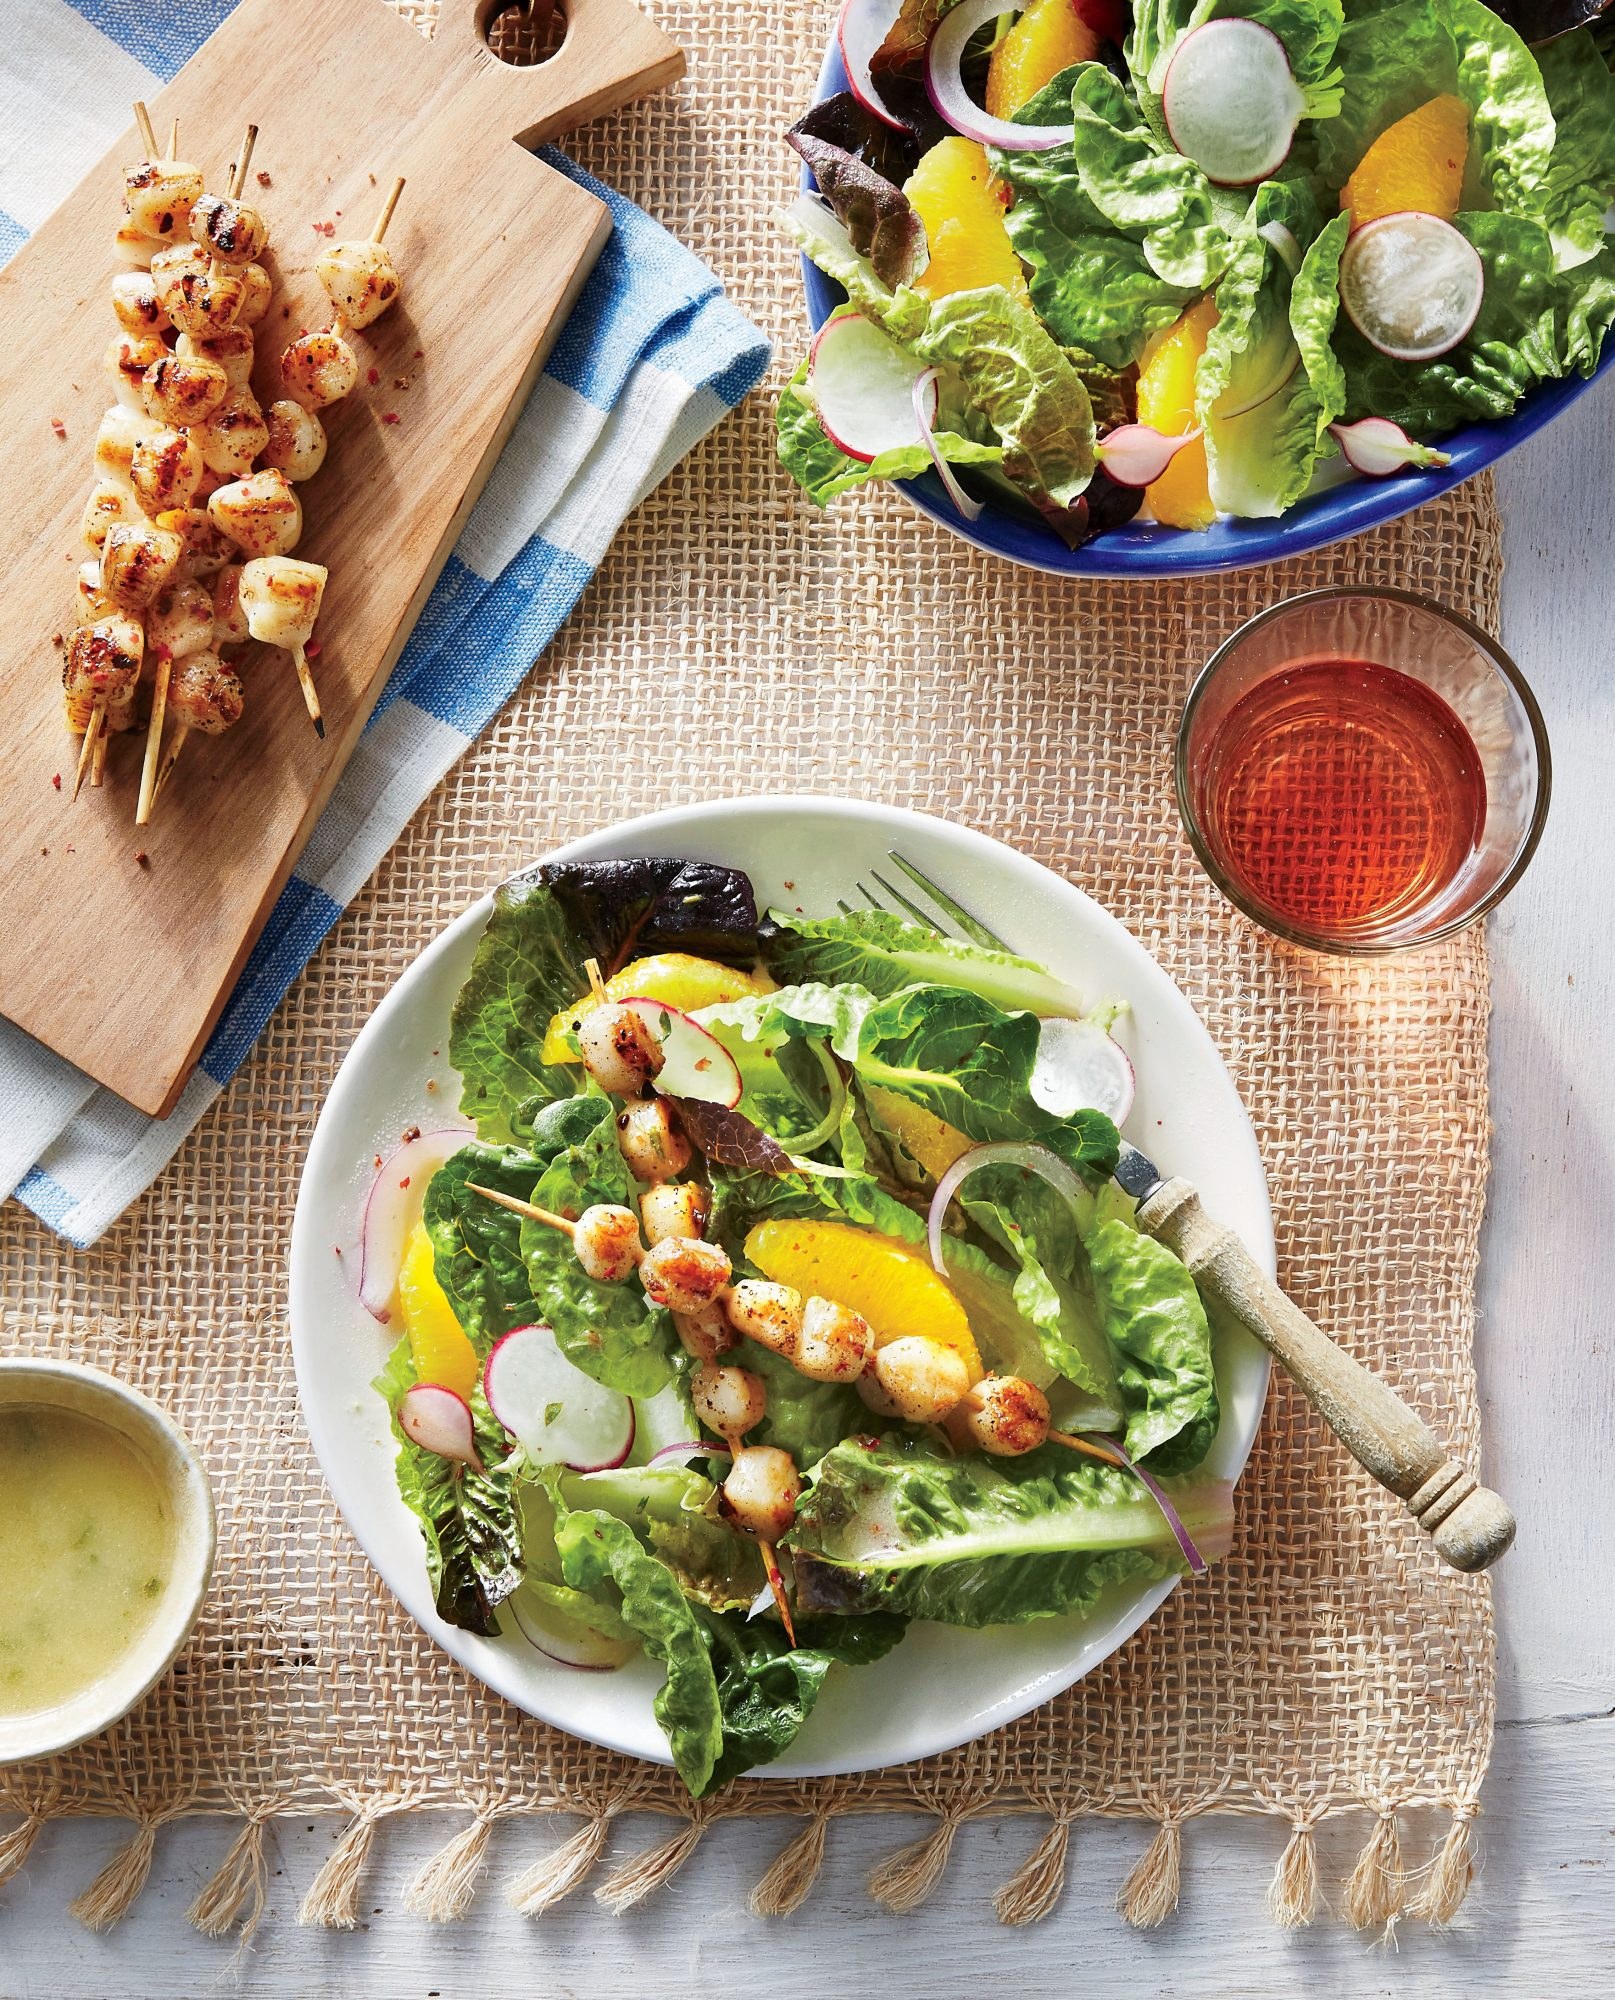 The tang of the citrus vinaigrette is the secret weapon tossed into this mixture of crispy leafy greens, grilled bay scallops, and orange slices.